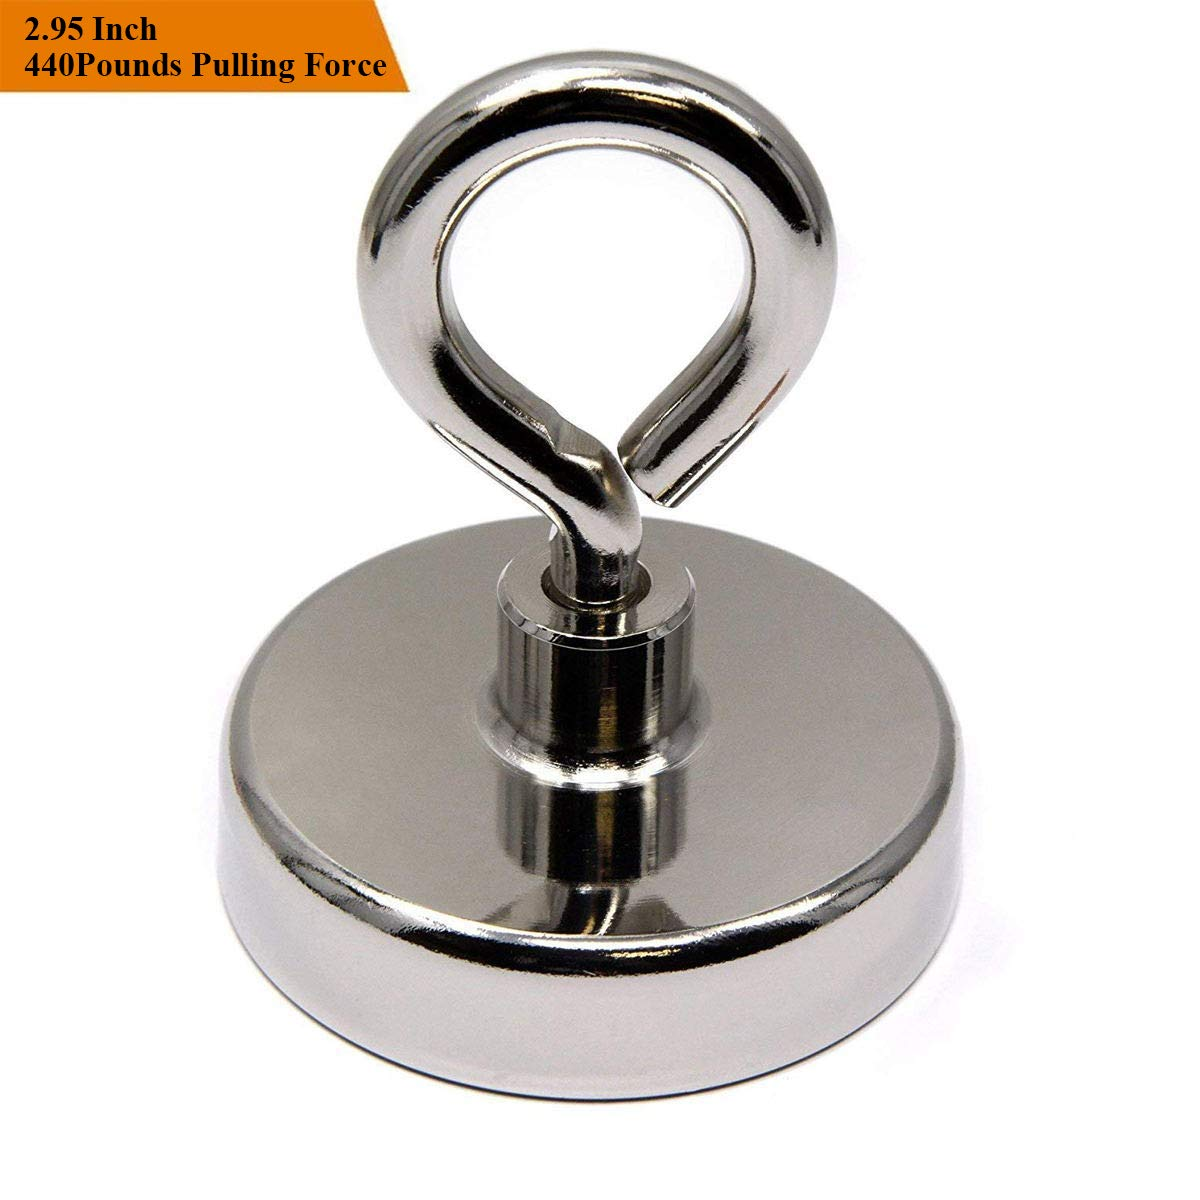 Wukong 440LB(200KG) Super Powerful Neodymium Fishing Magnets Magnetic Grade N52 Diameter 2.95'' Round Neodymium Magnet with Eyebolt - Magnet for River or Lake Fishing by Wukong (Image #1)